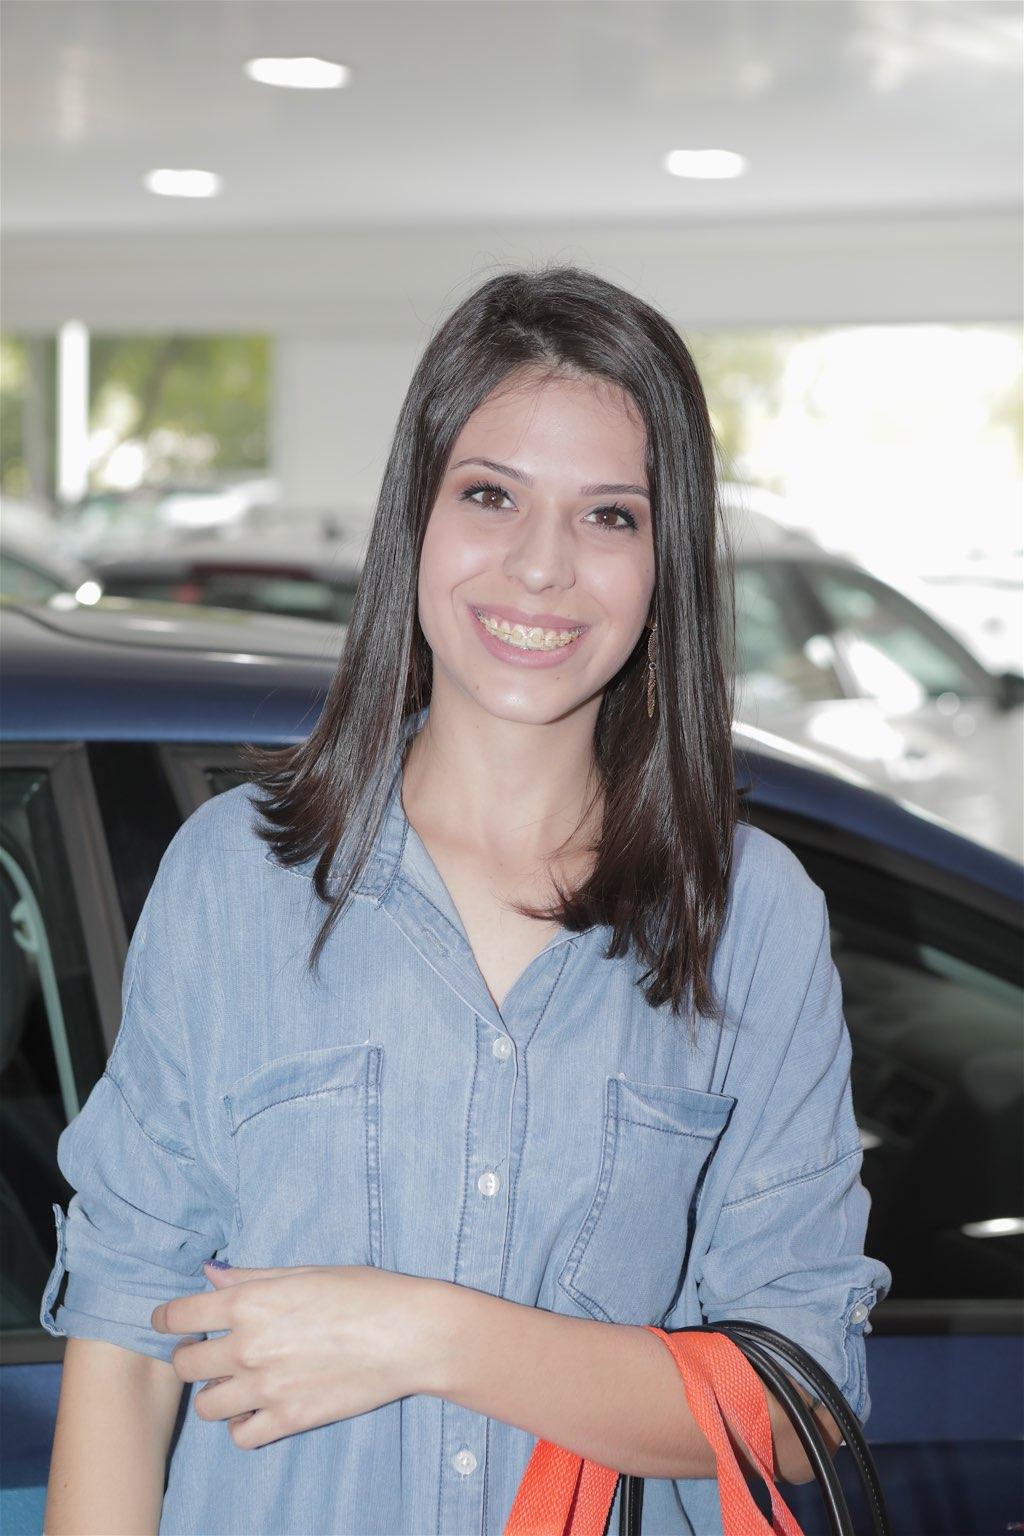 Auto_Escola_Evento_Polo_13